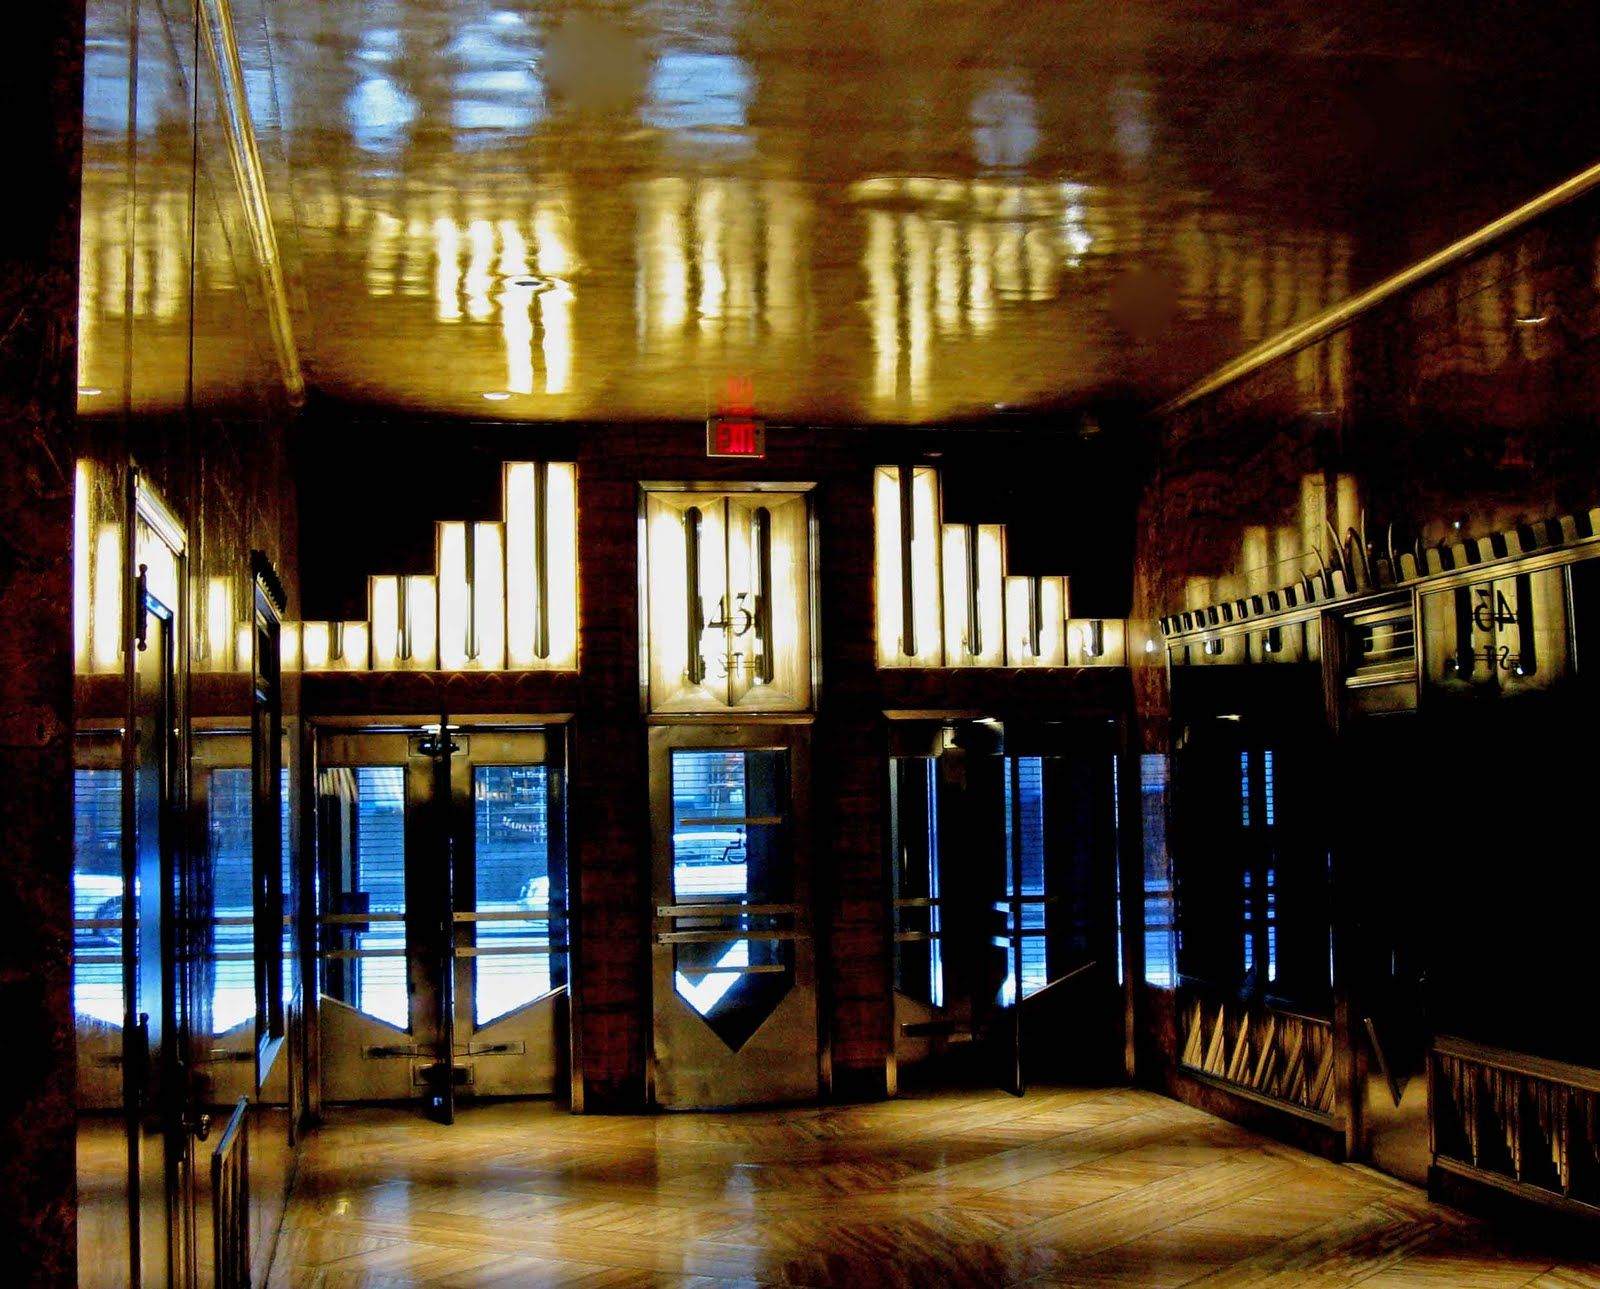 Interior Of Rockefeller Center,Ny Httpwwwnysleeperwordpresscom Tracking New York, New York